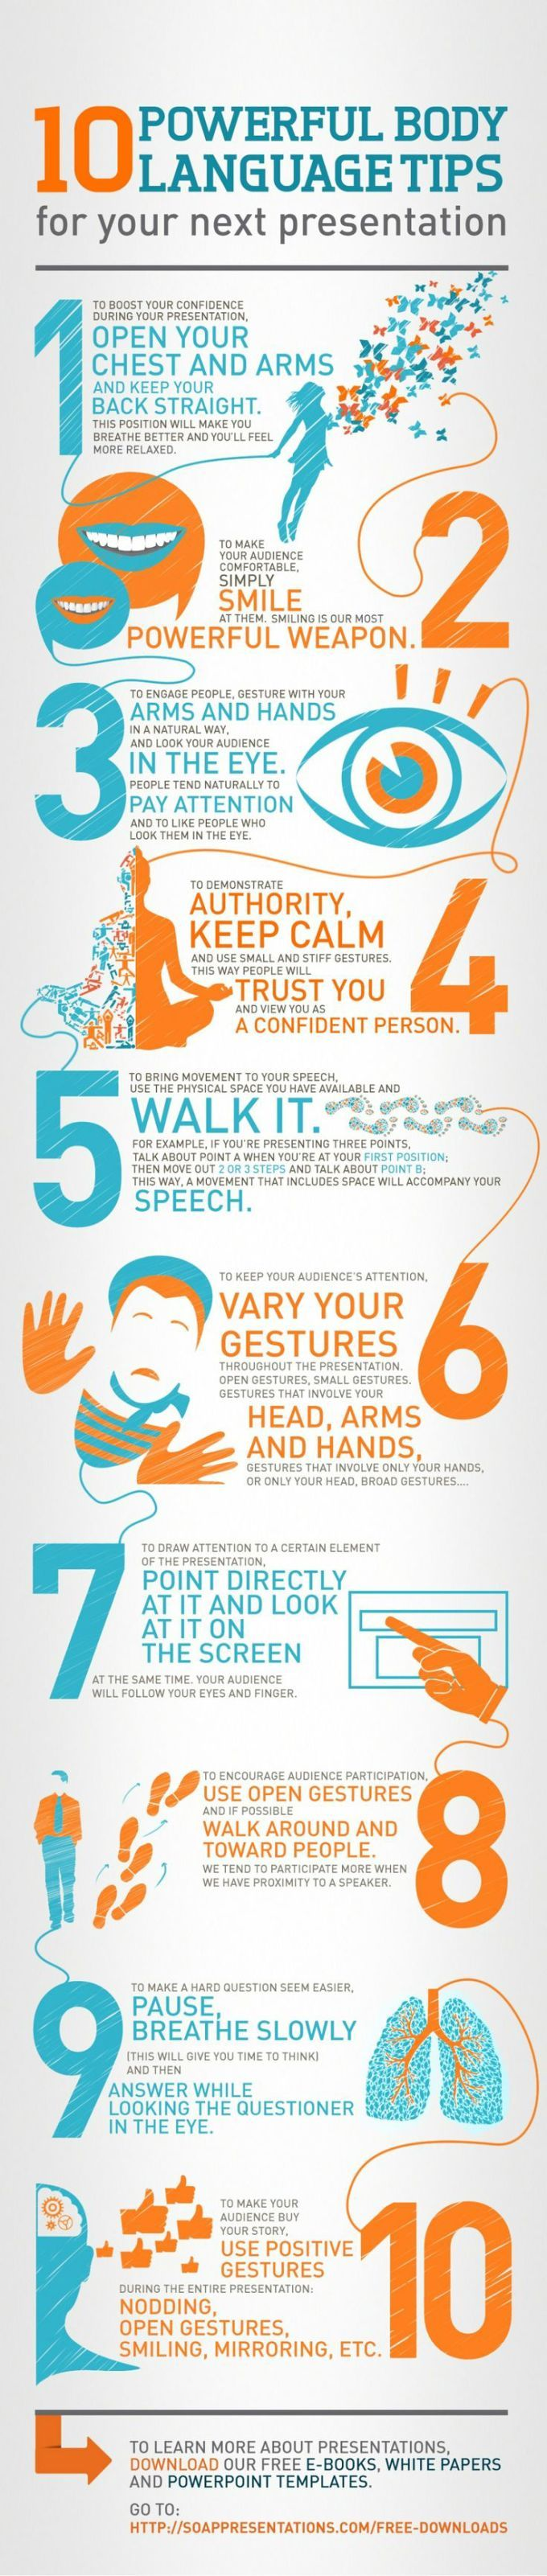 10 Awesome Body Language Tips To Be Awesome In Front Of A Crowd!